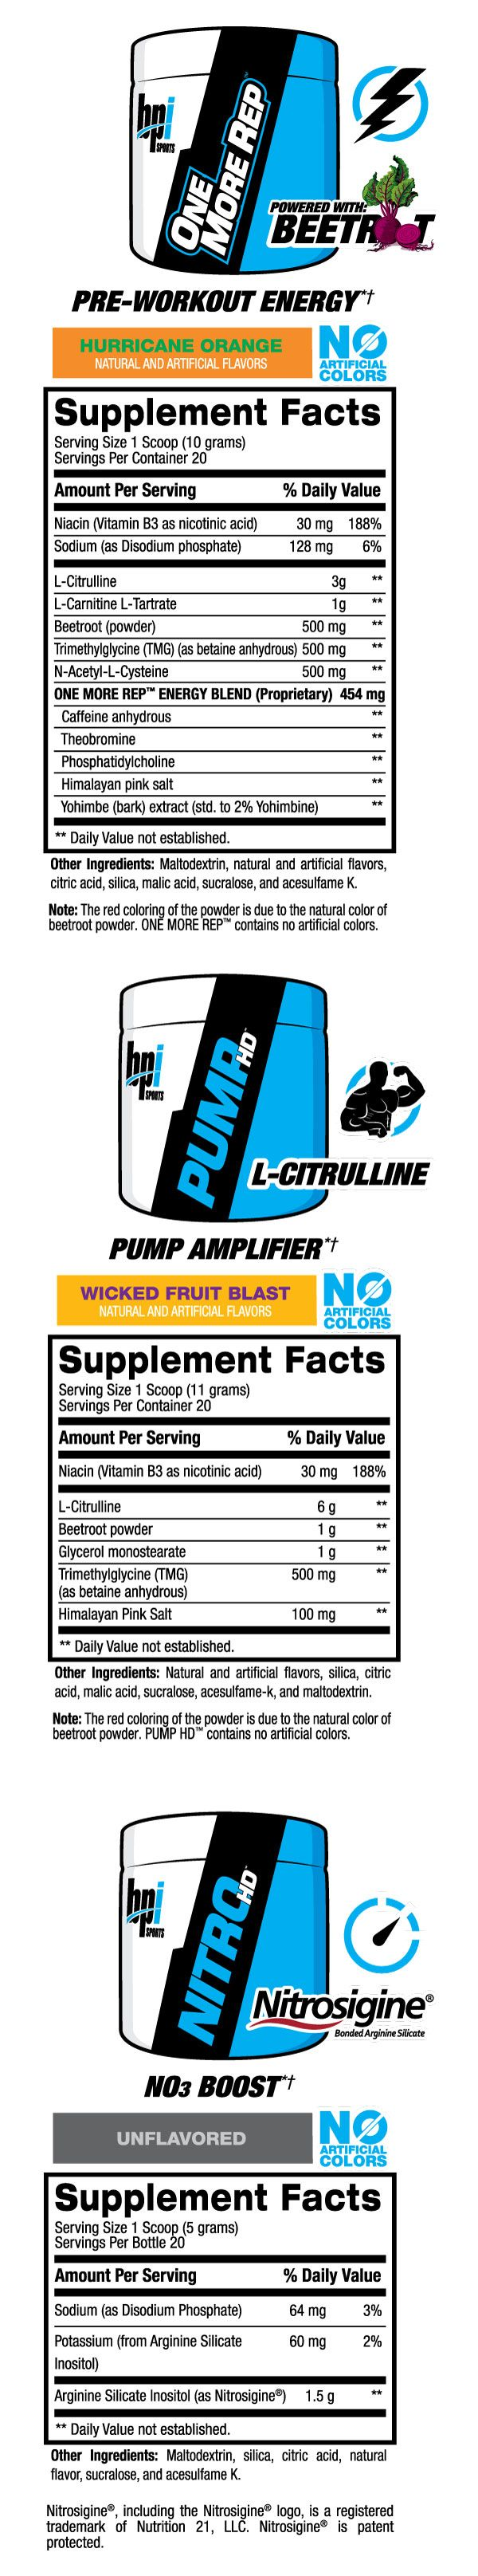 Triple Threat Kit Supplement Facts